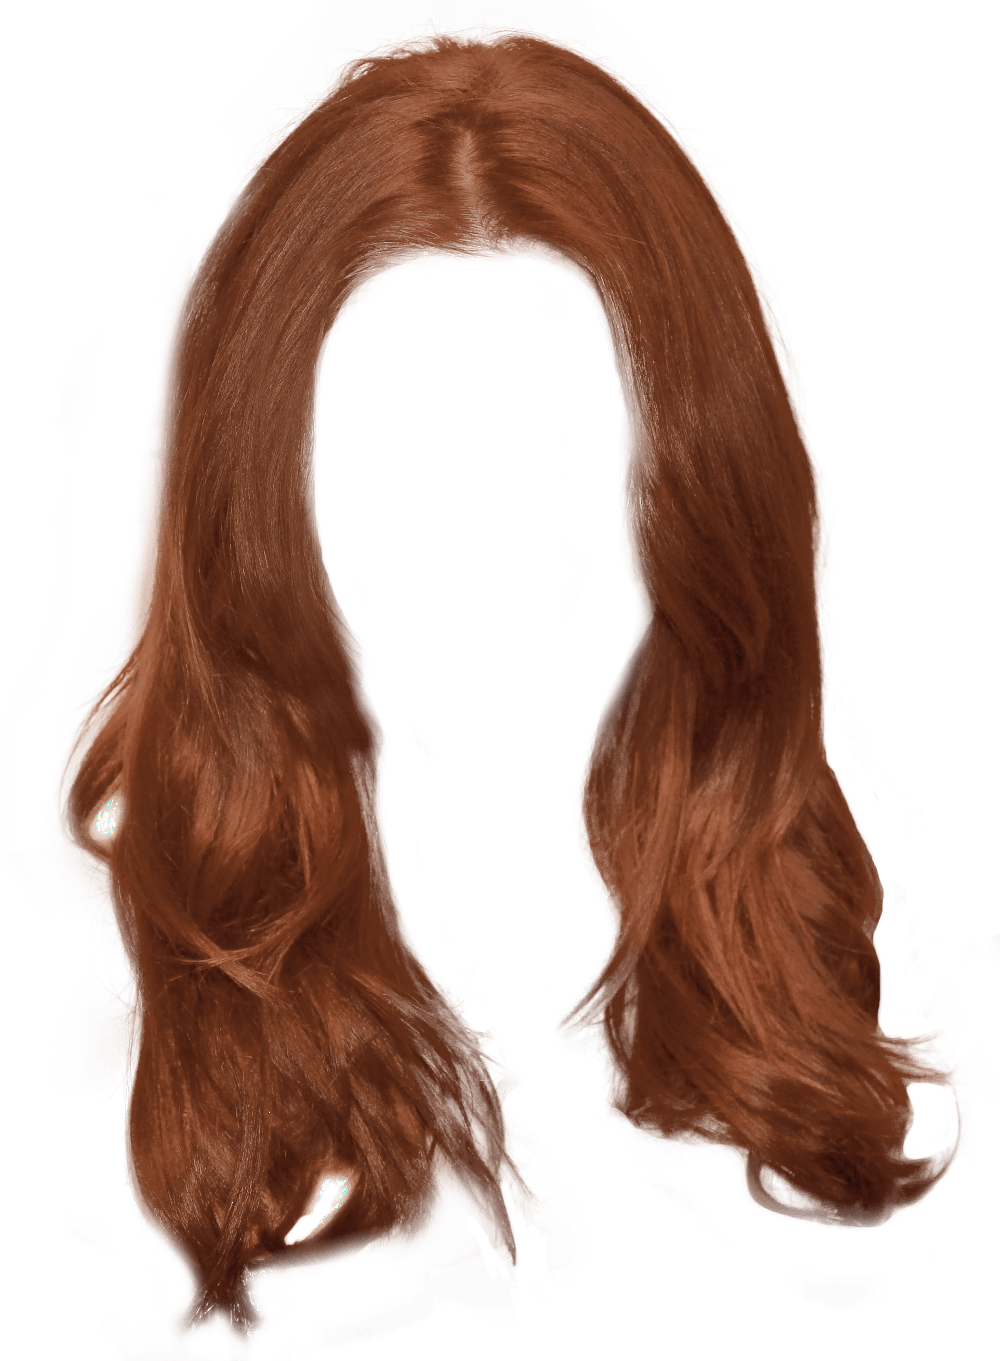 Girl Hair PNG Transparent Ima